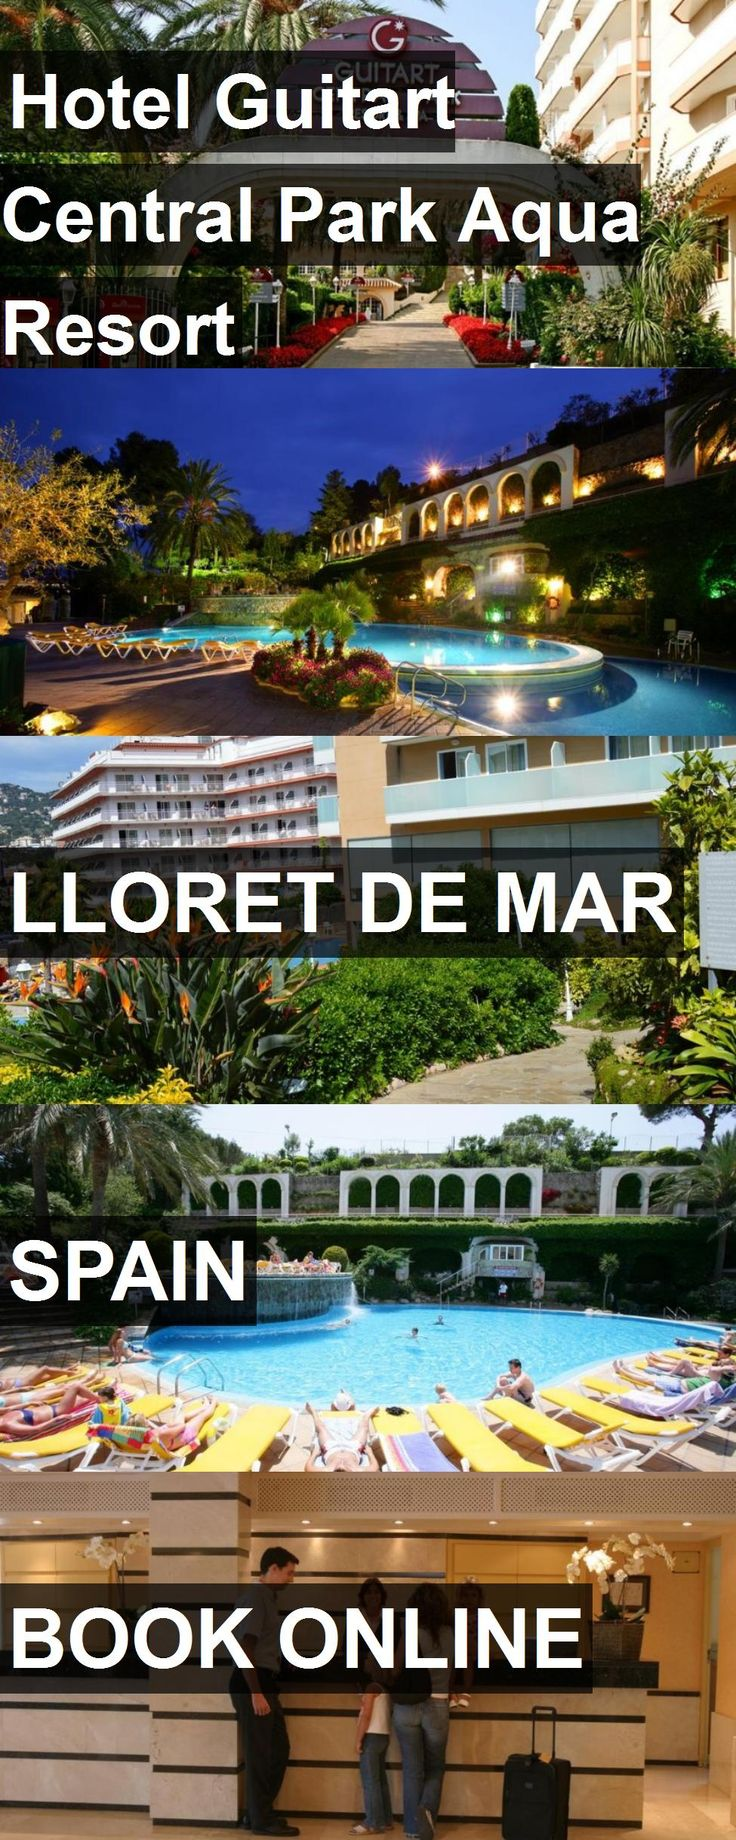 Hotel Hotel Guitart Central Park Aqua Resort in Lloret de Mar, Spain. For more information, photos, reviews and best prices please follow the link. #Spain #LloretdeMar #HotelGuitartCentralParkAquaResort #hotel #travel #vacation